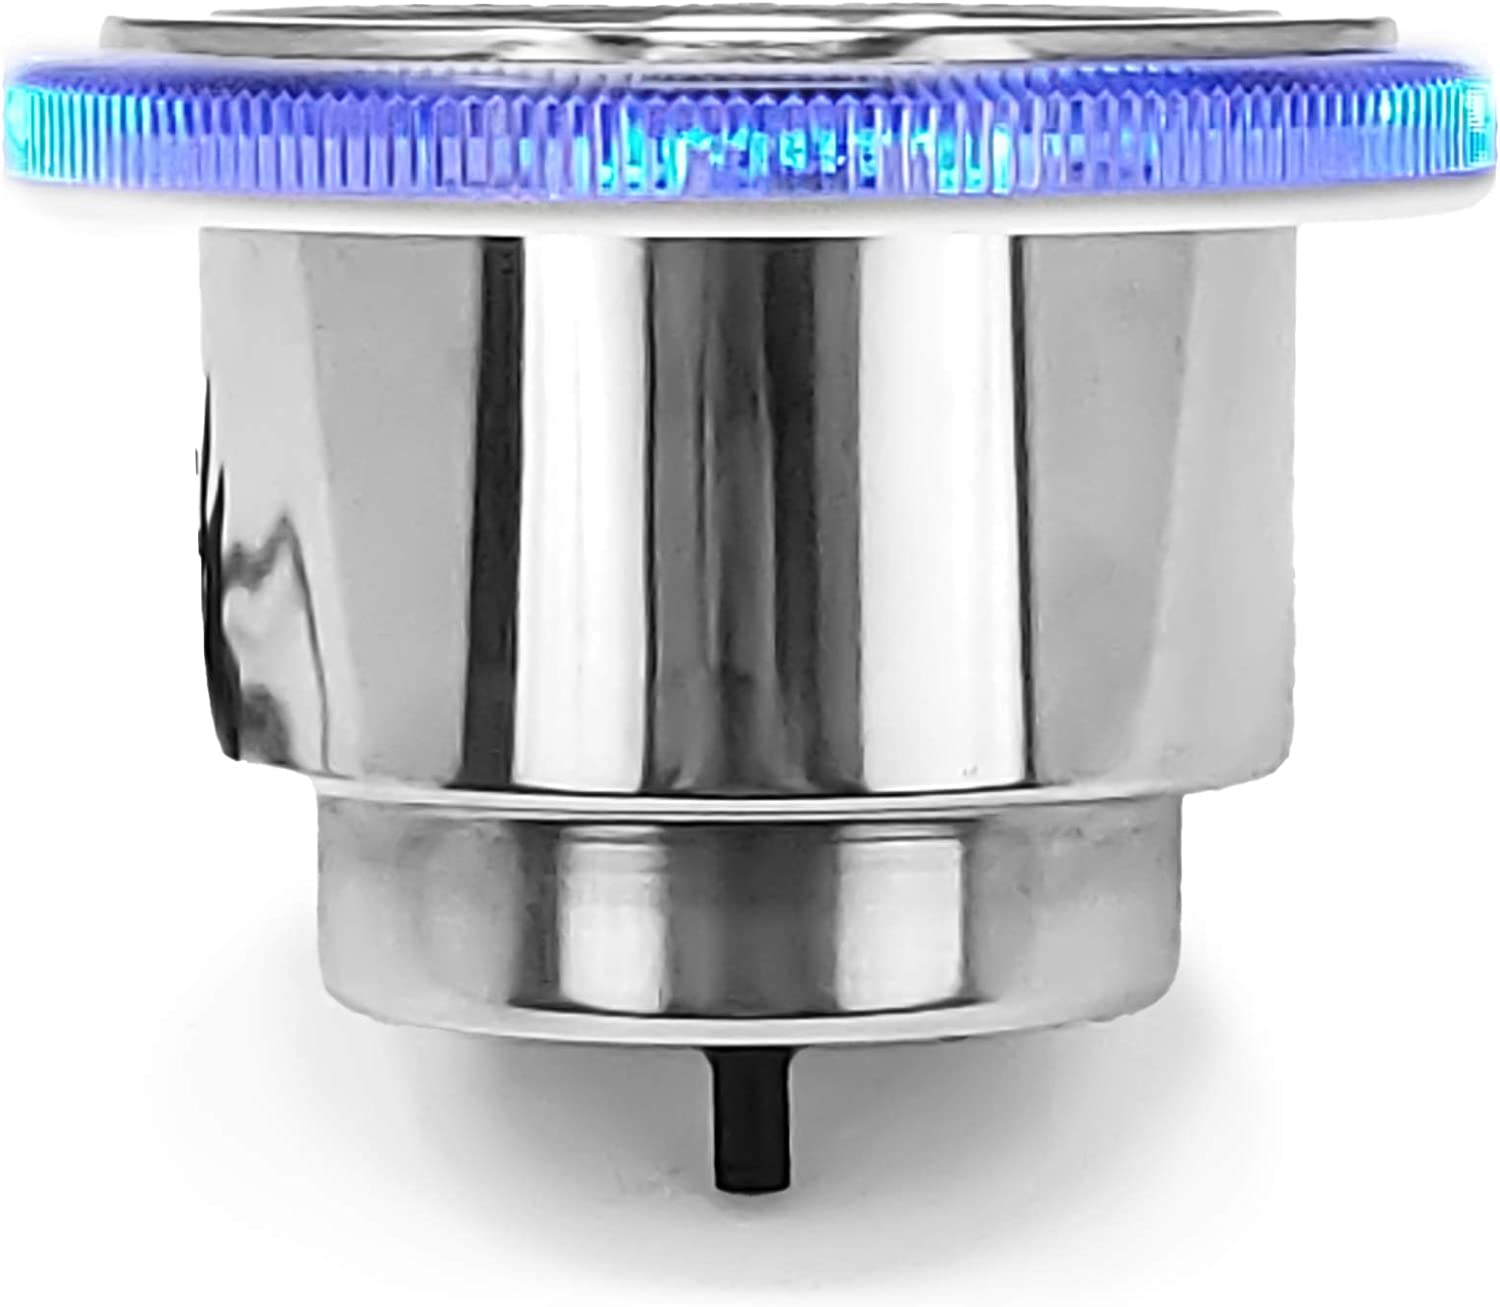 Five Oceans Stainless Steel Cup Drink Holder w/ 12V Blue LED Ring Light FO-4434